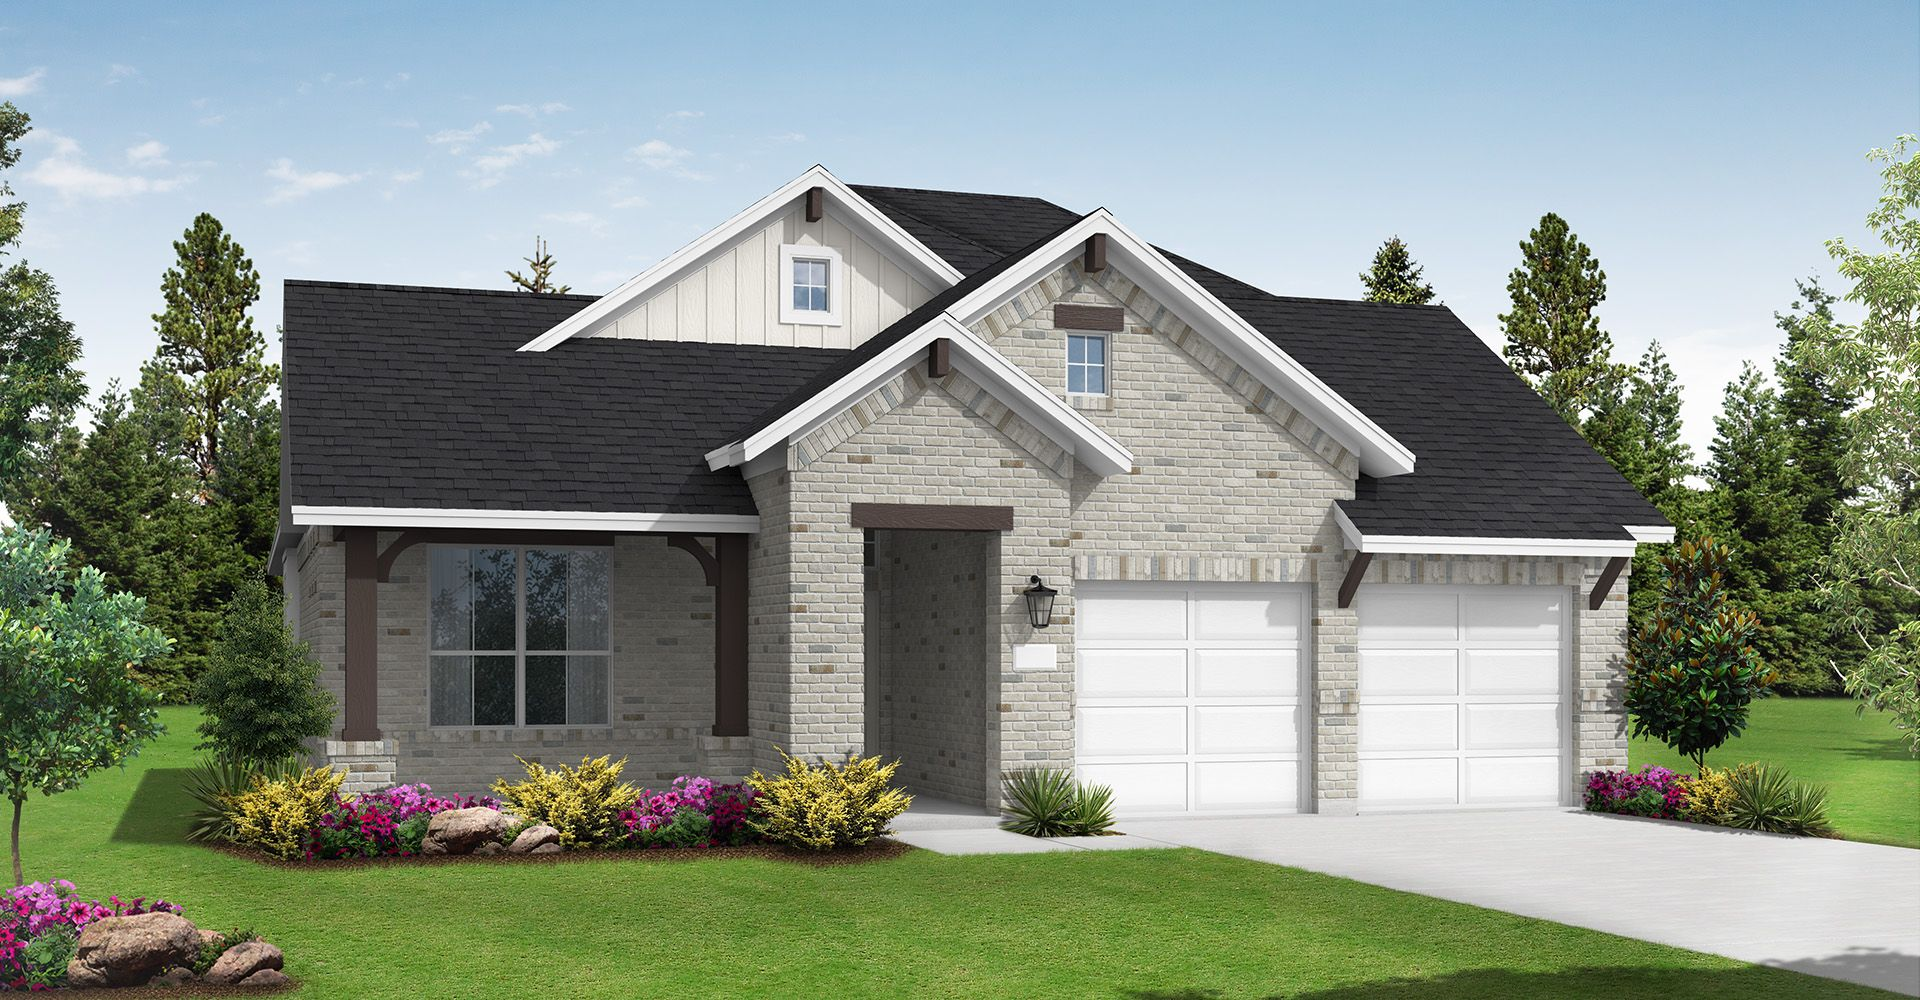 Exterior featured in the Burkburnett II By Coventry Homes in Austin, TX